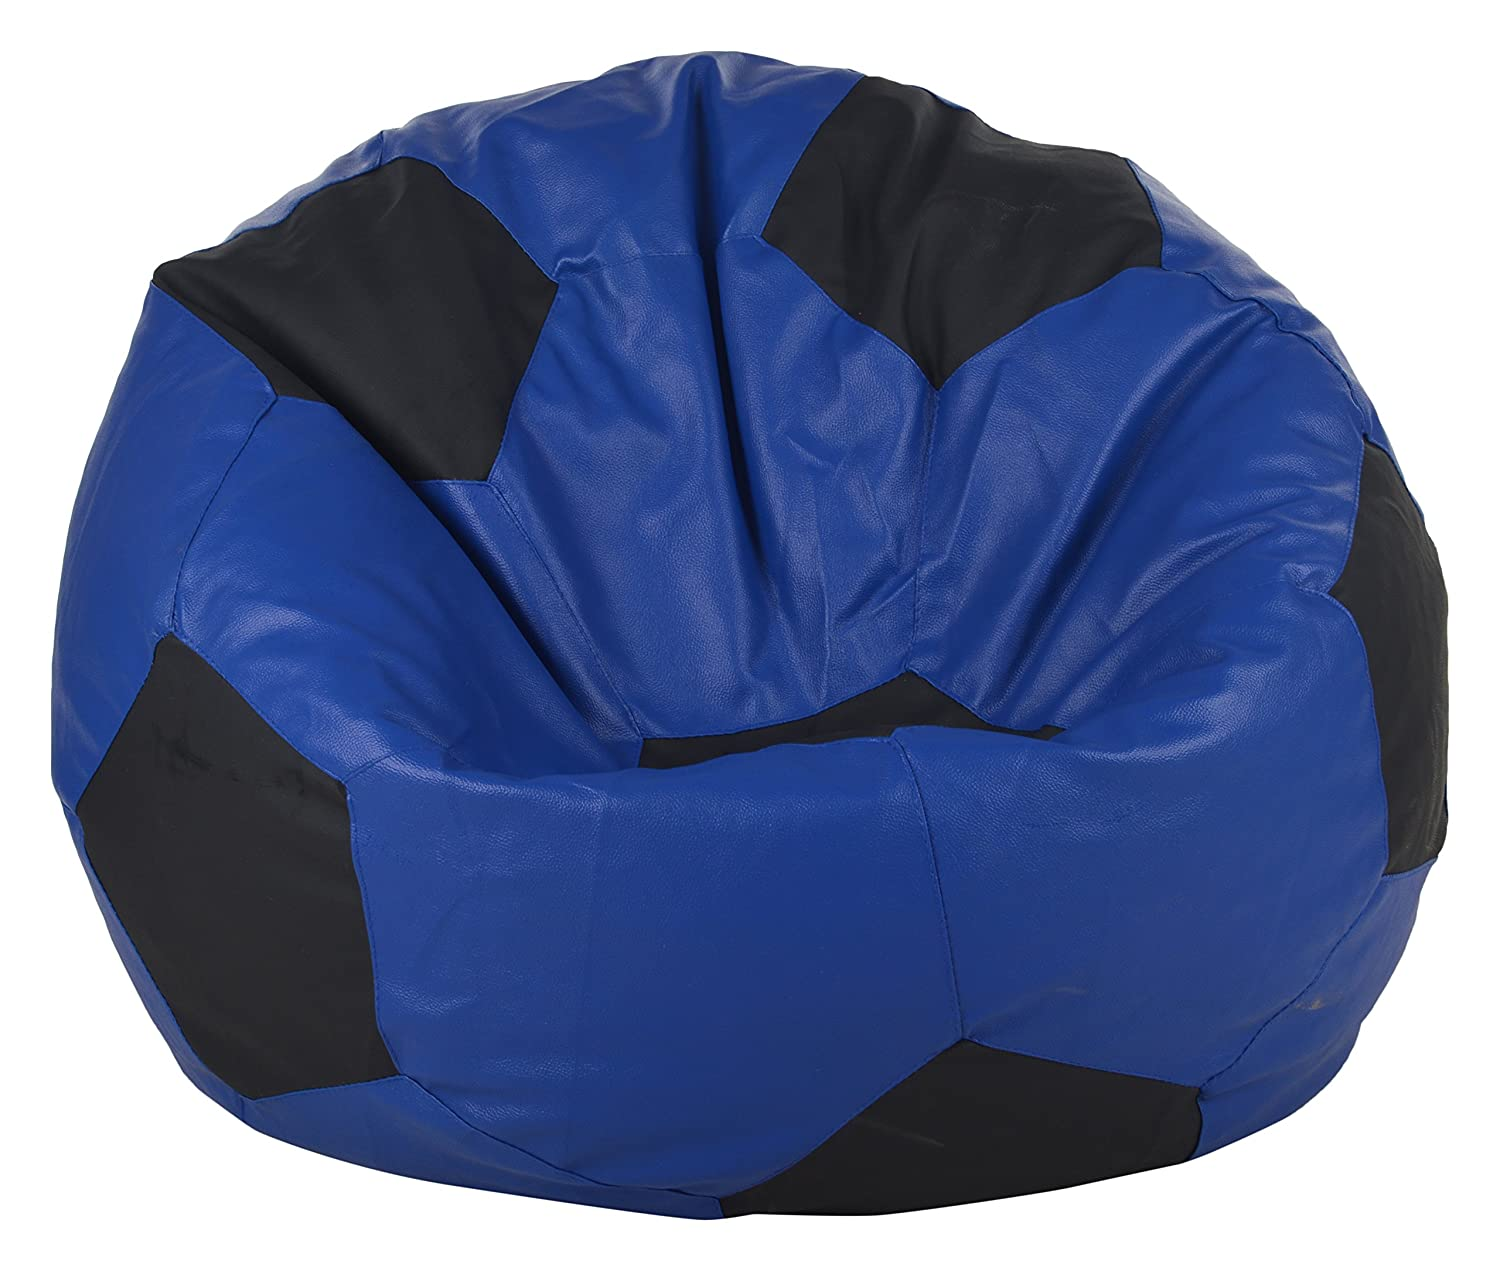 Pleasant Goodwill Living Room Bean Bag Blue And Black Amazon In Machost Co Dining Chair Design Ideas Machostcouk